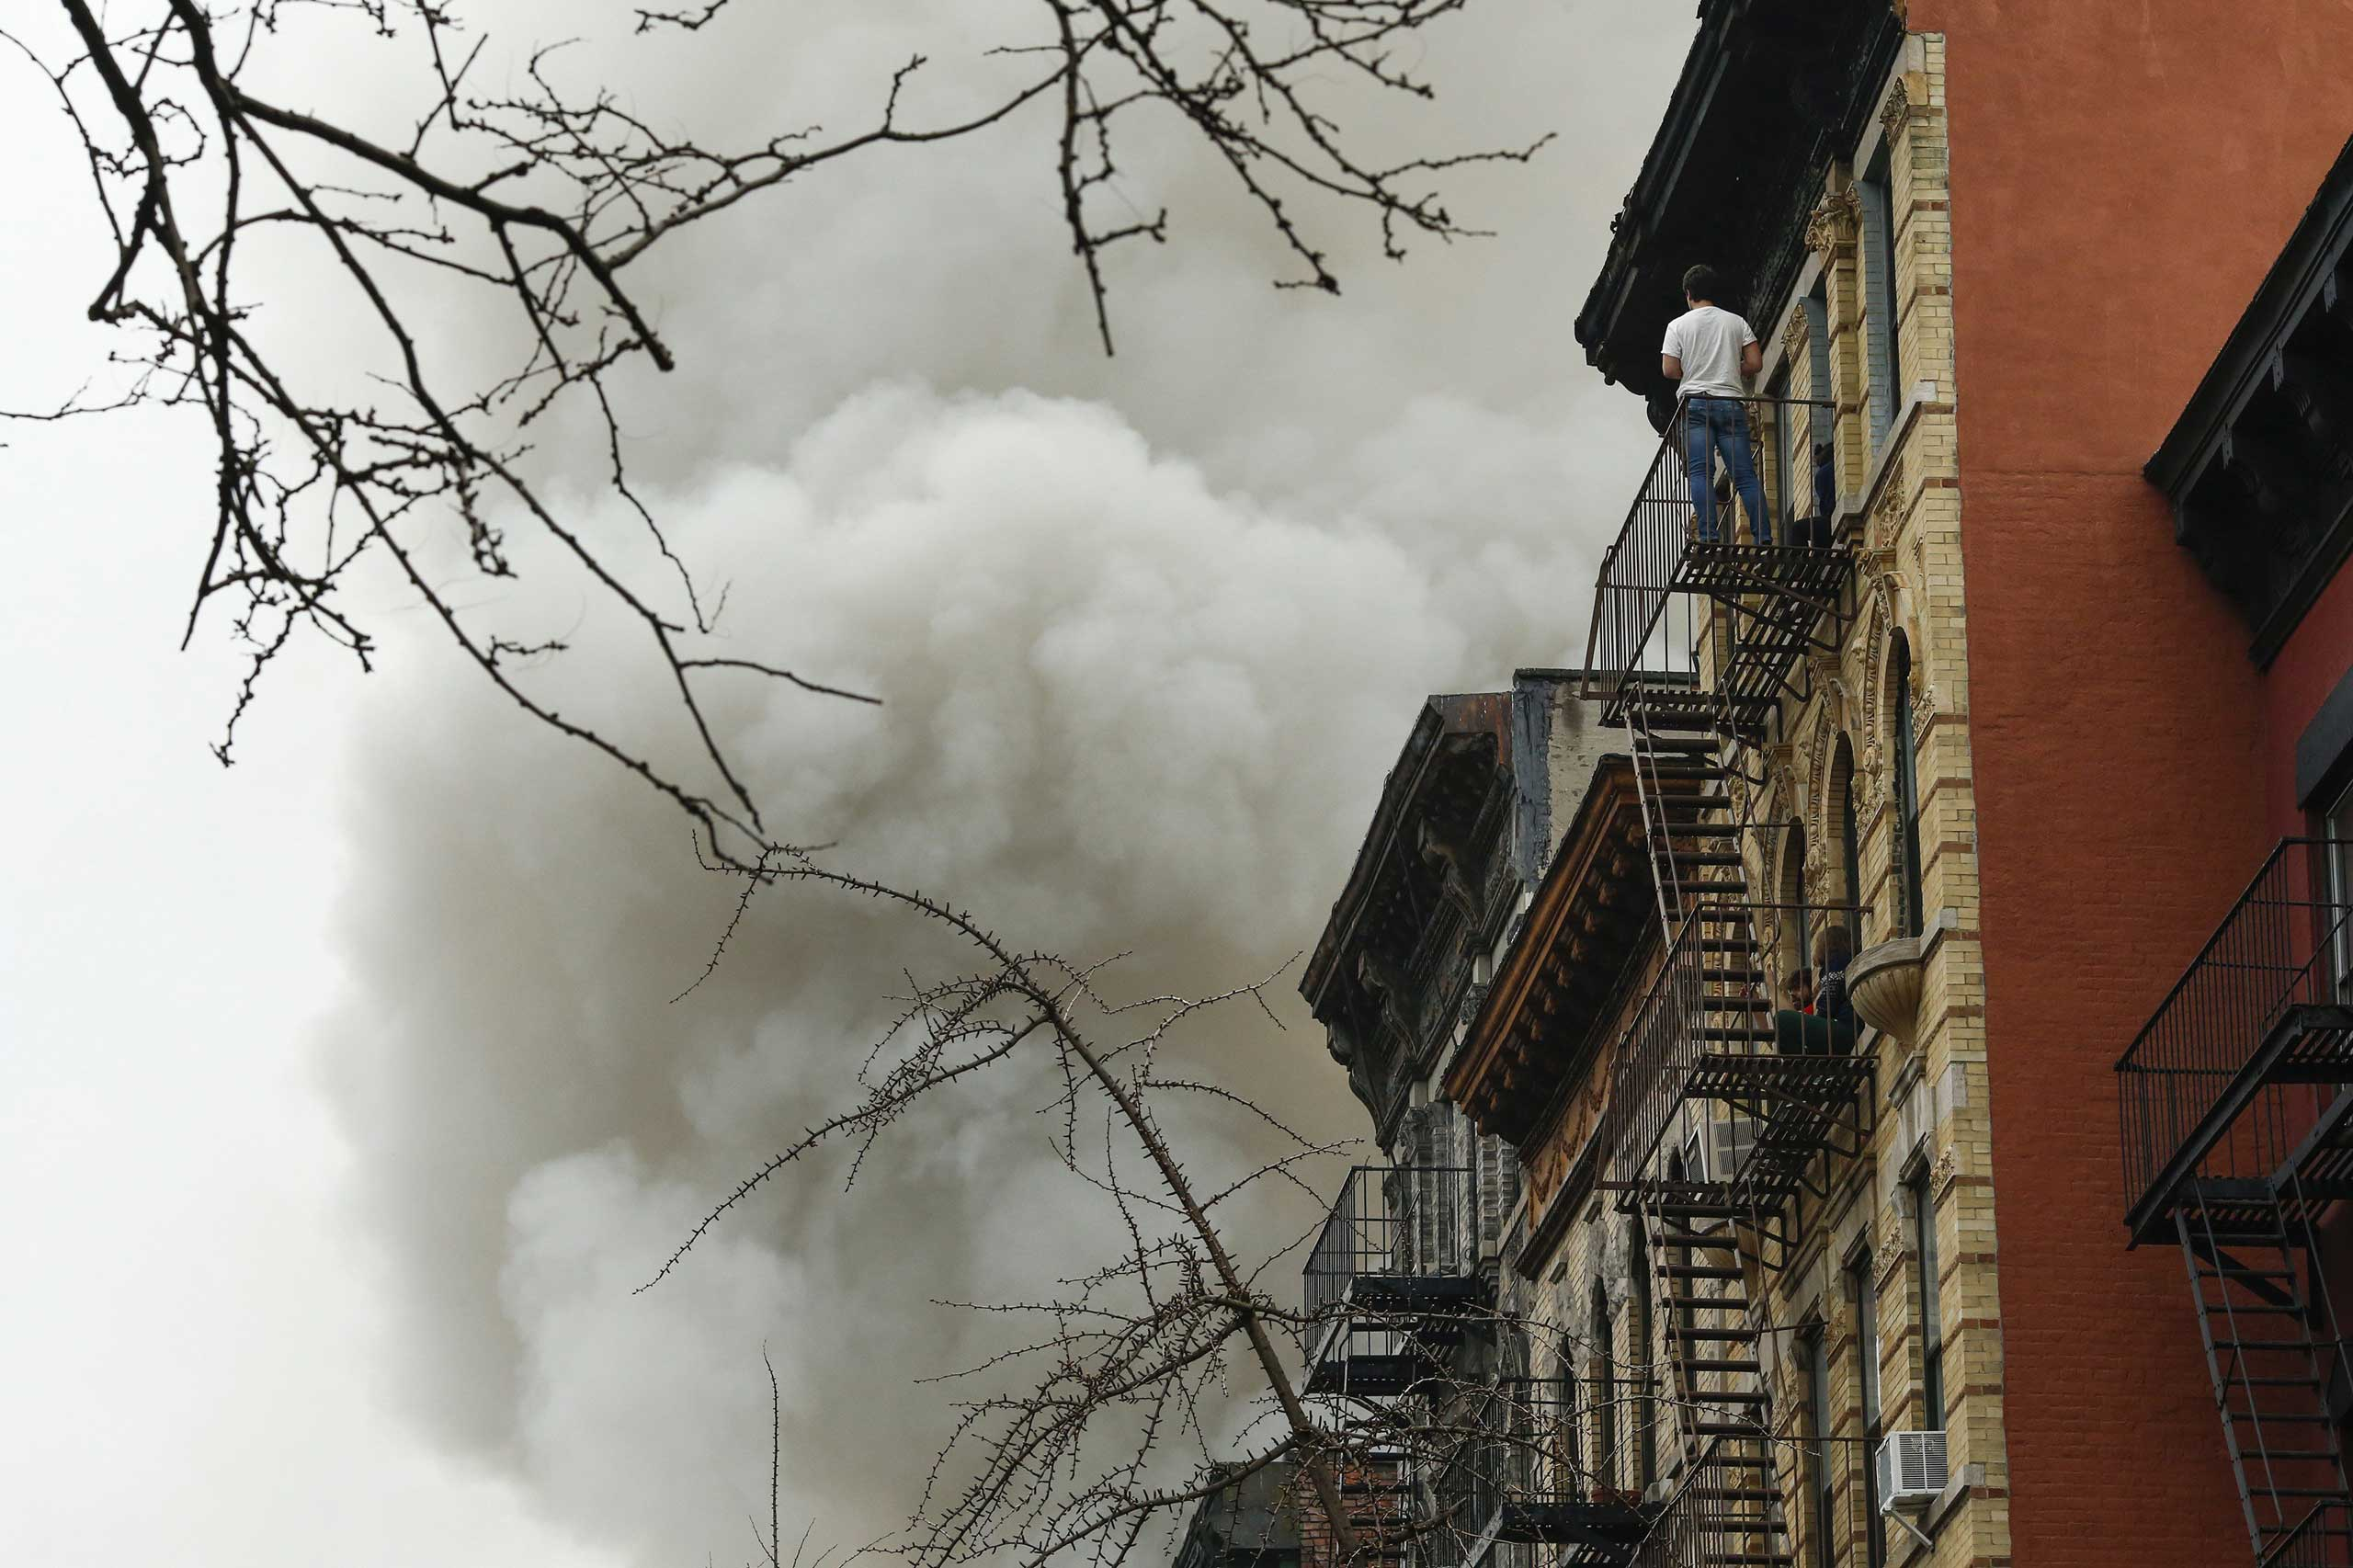 A resident watches a blaze at a commercial and residential block in New York City on March 26, 2015.